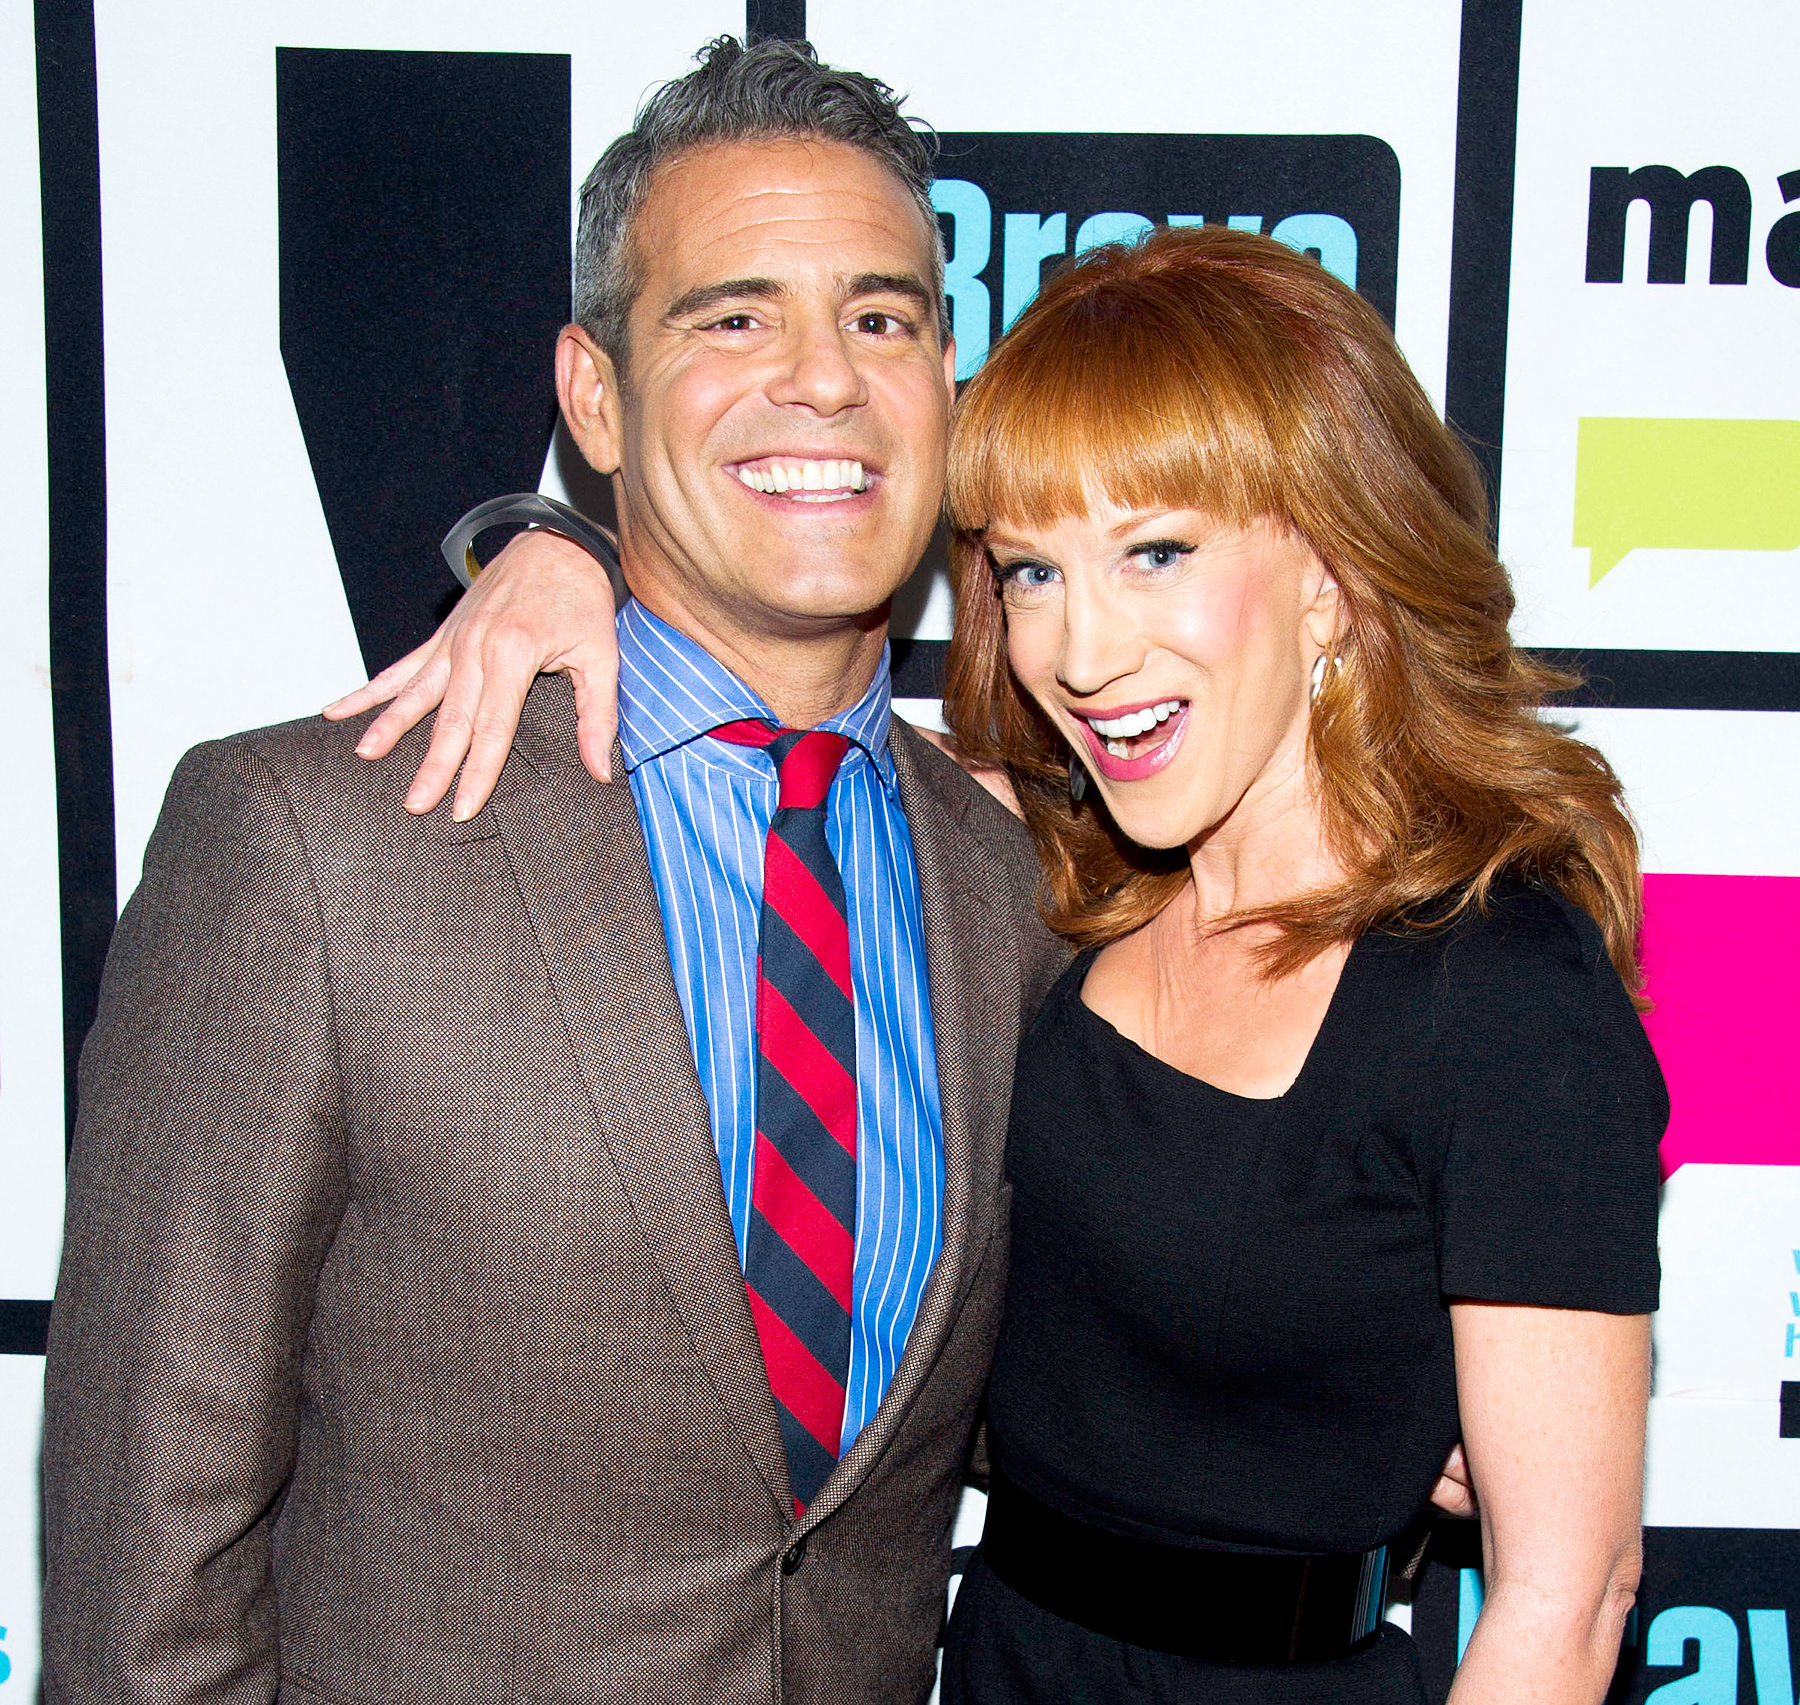 Andy Cohen Denies Accusations Of Cocaine Use From Kathy Griffin